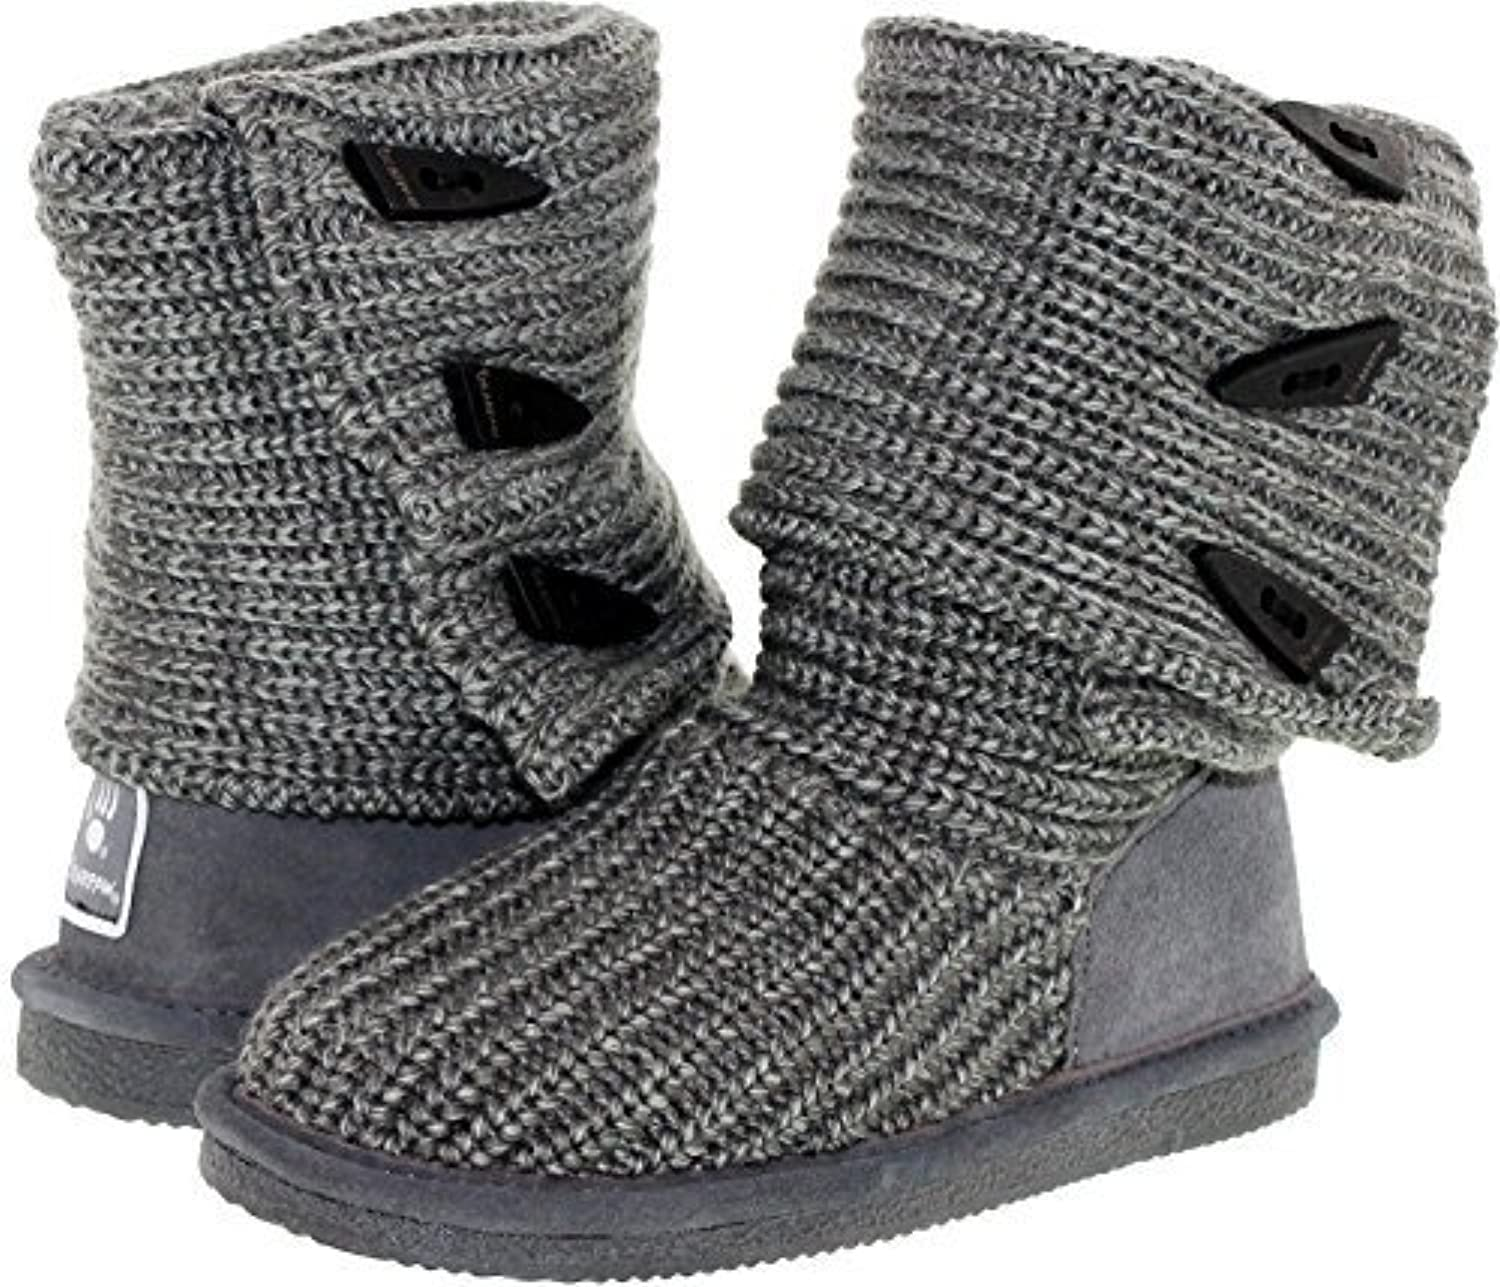 Bearpaw Women's Knit Tall Snow Boot